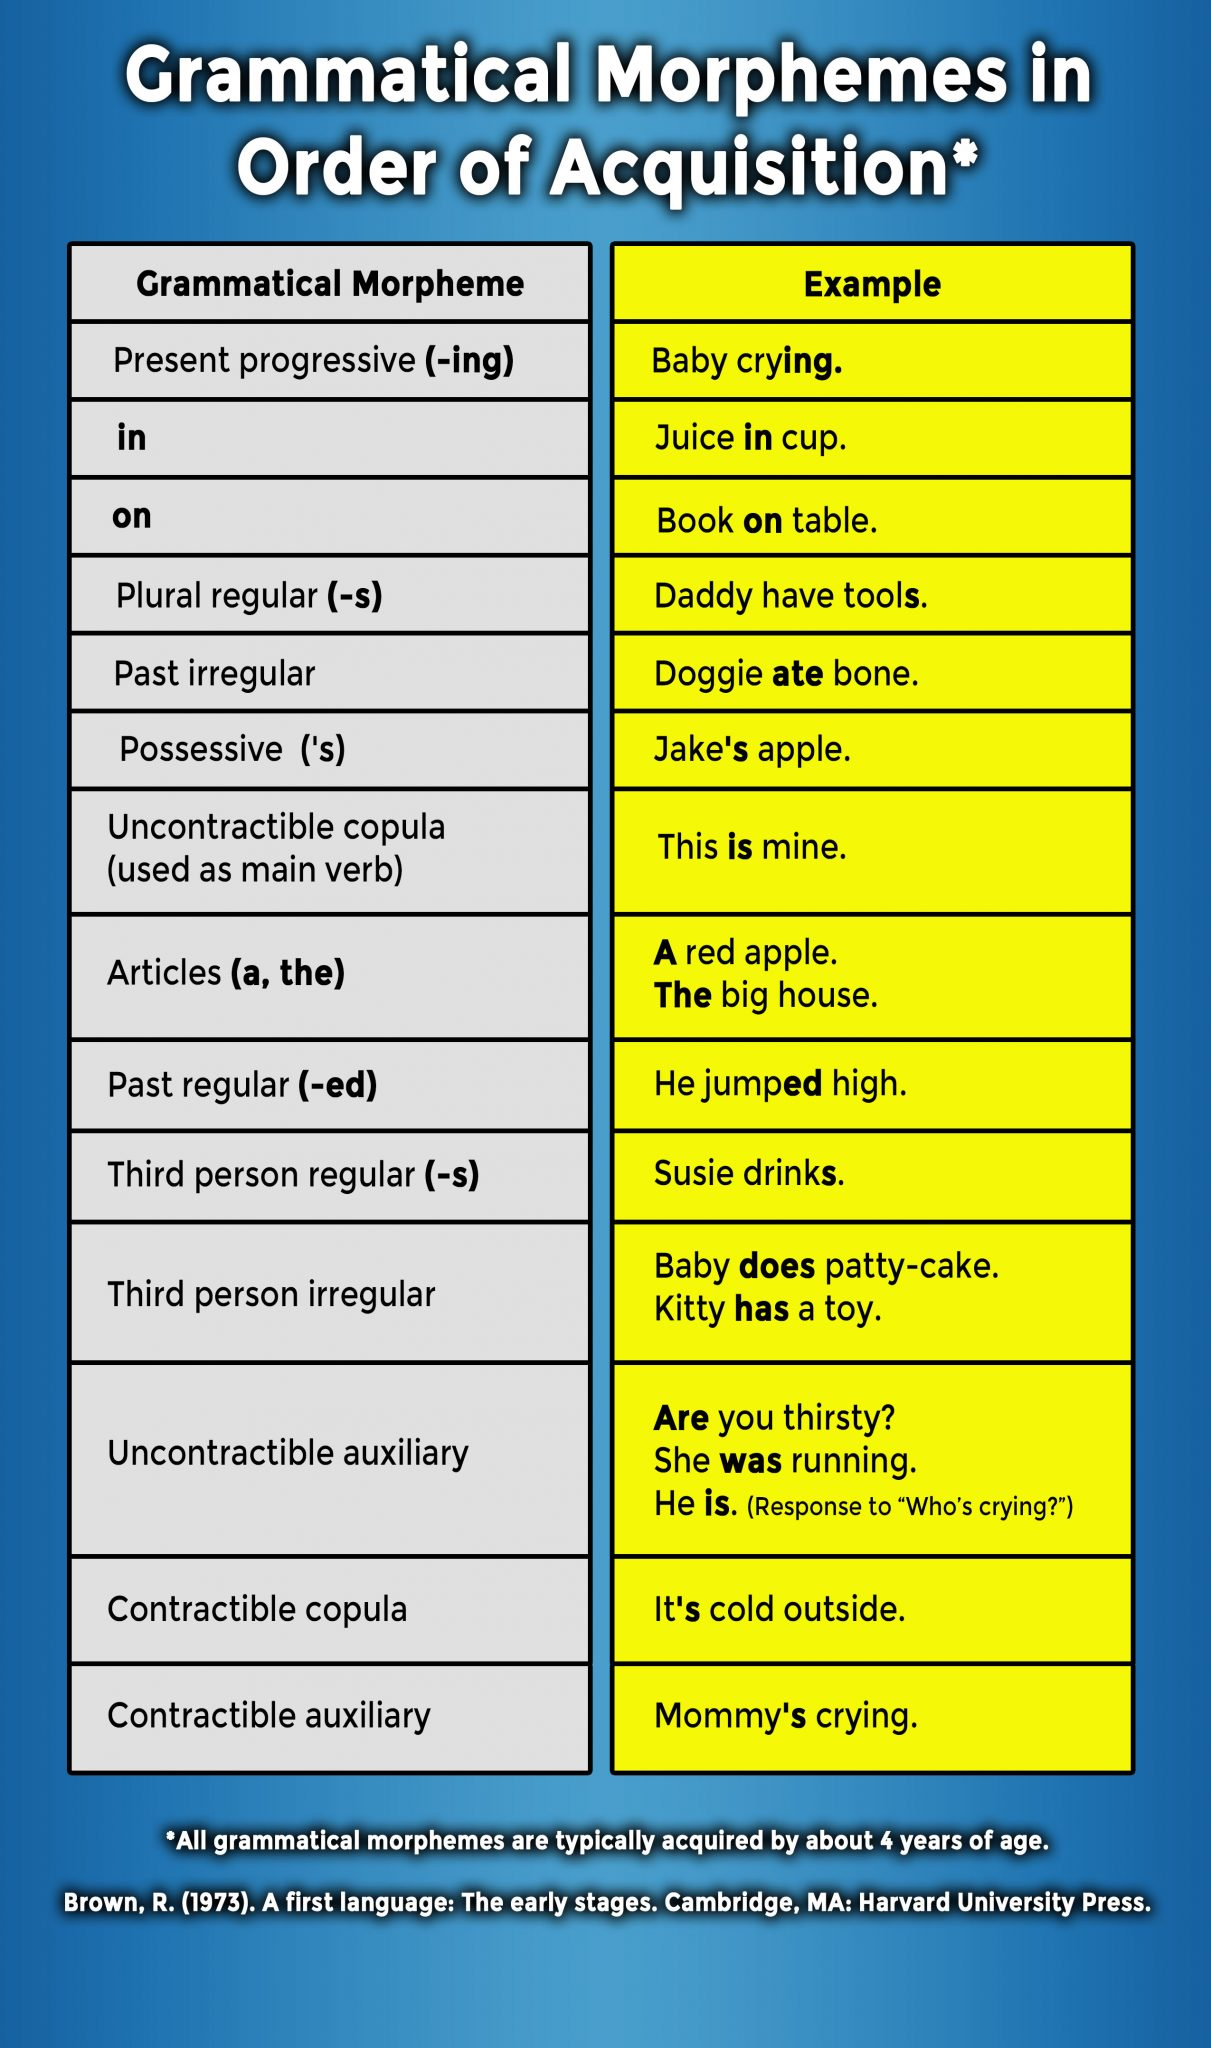 Grammatical Morphemes in Order of Acquisition 1211x2048 1